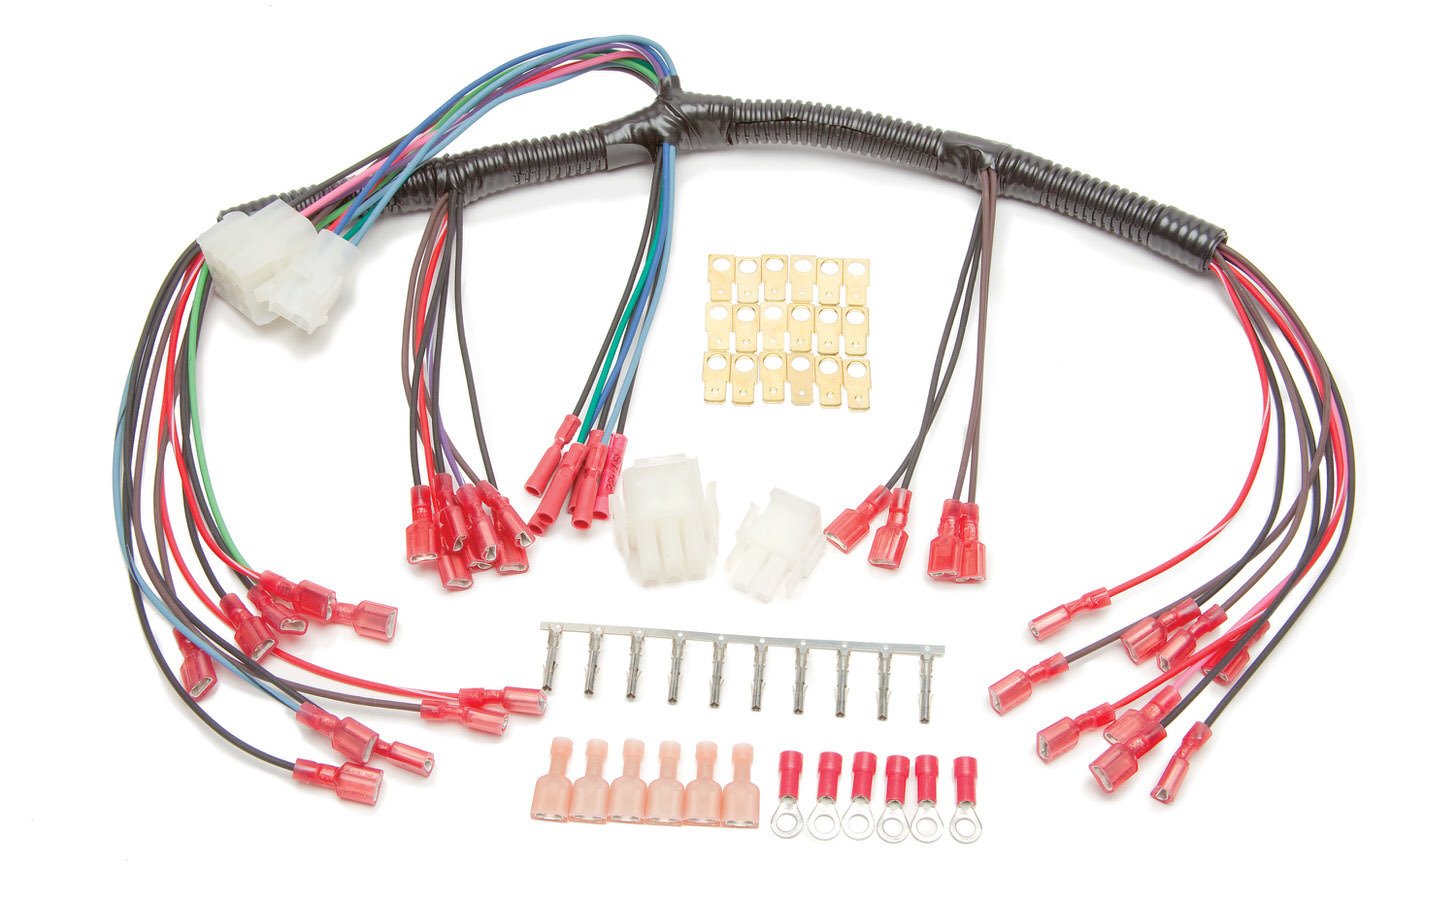 Painless Wiring 30301 Gauge Wiring Harness, High Beam / Turn Signal Indicator, Cable Driven Speedometer, Universal, Each